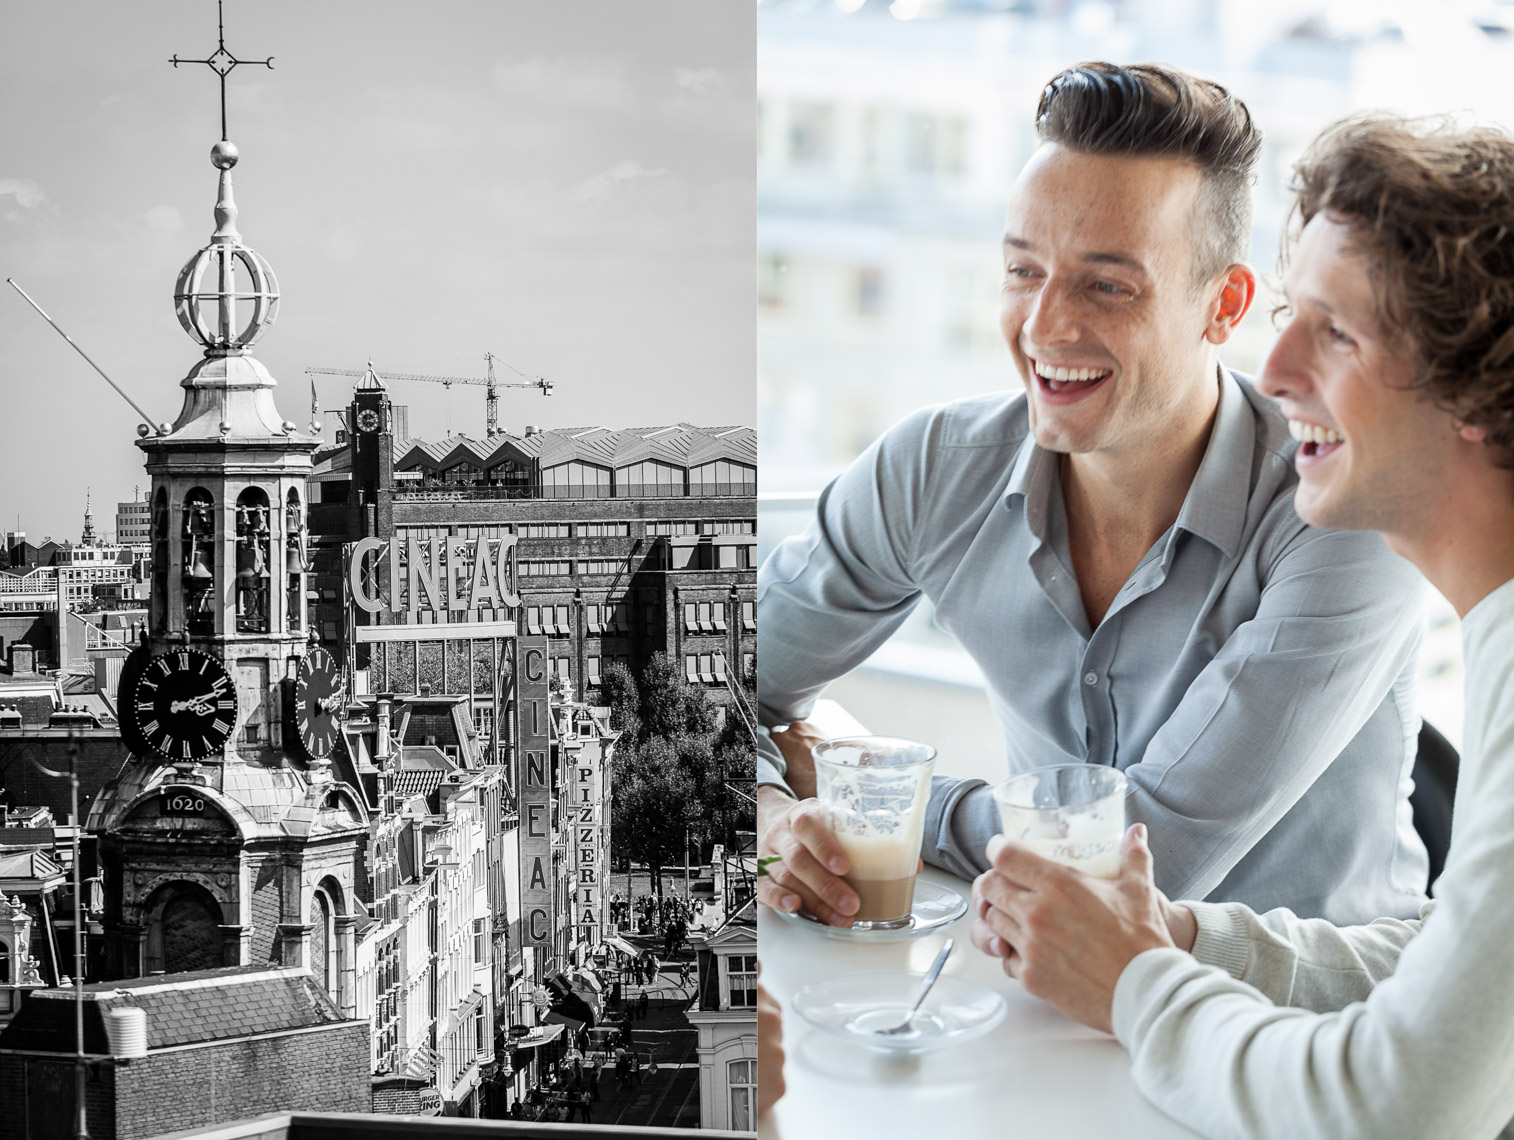 Lifestyle image for hotel in Amsterdam